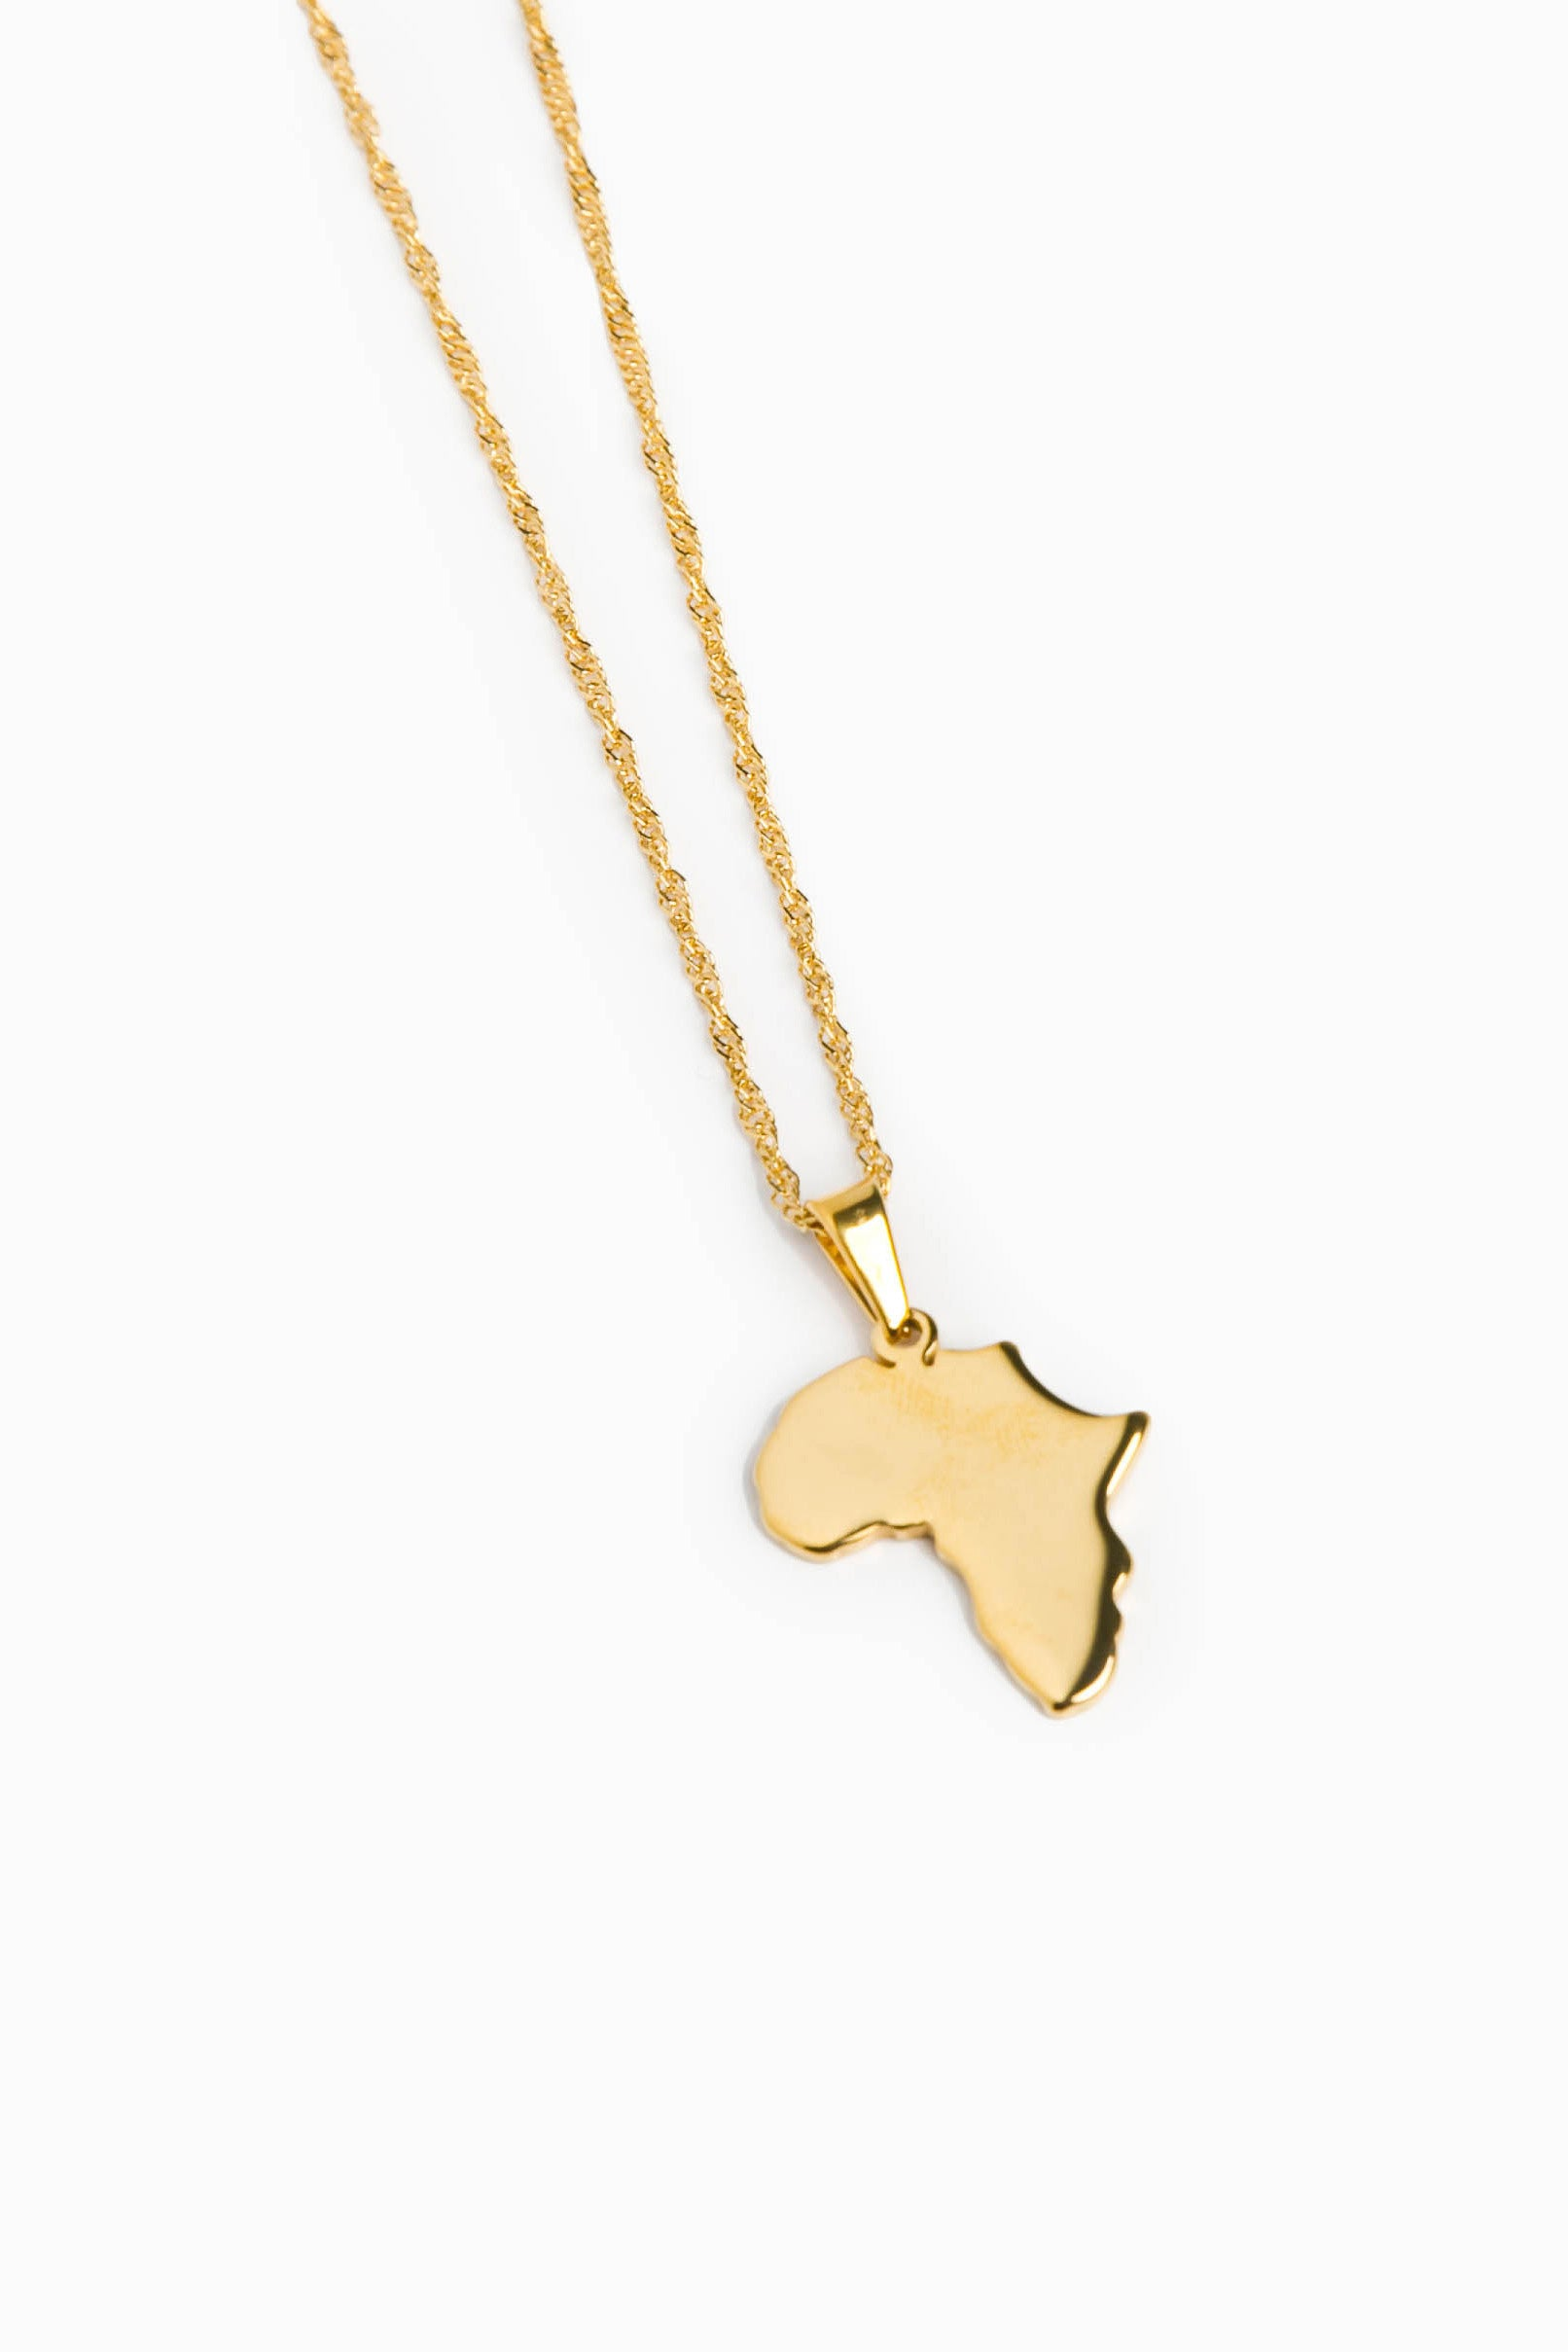 Africa Map Necklace   East Africana